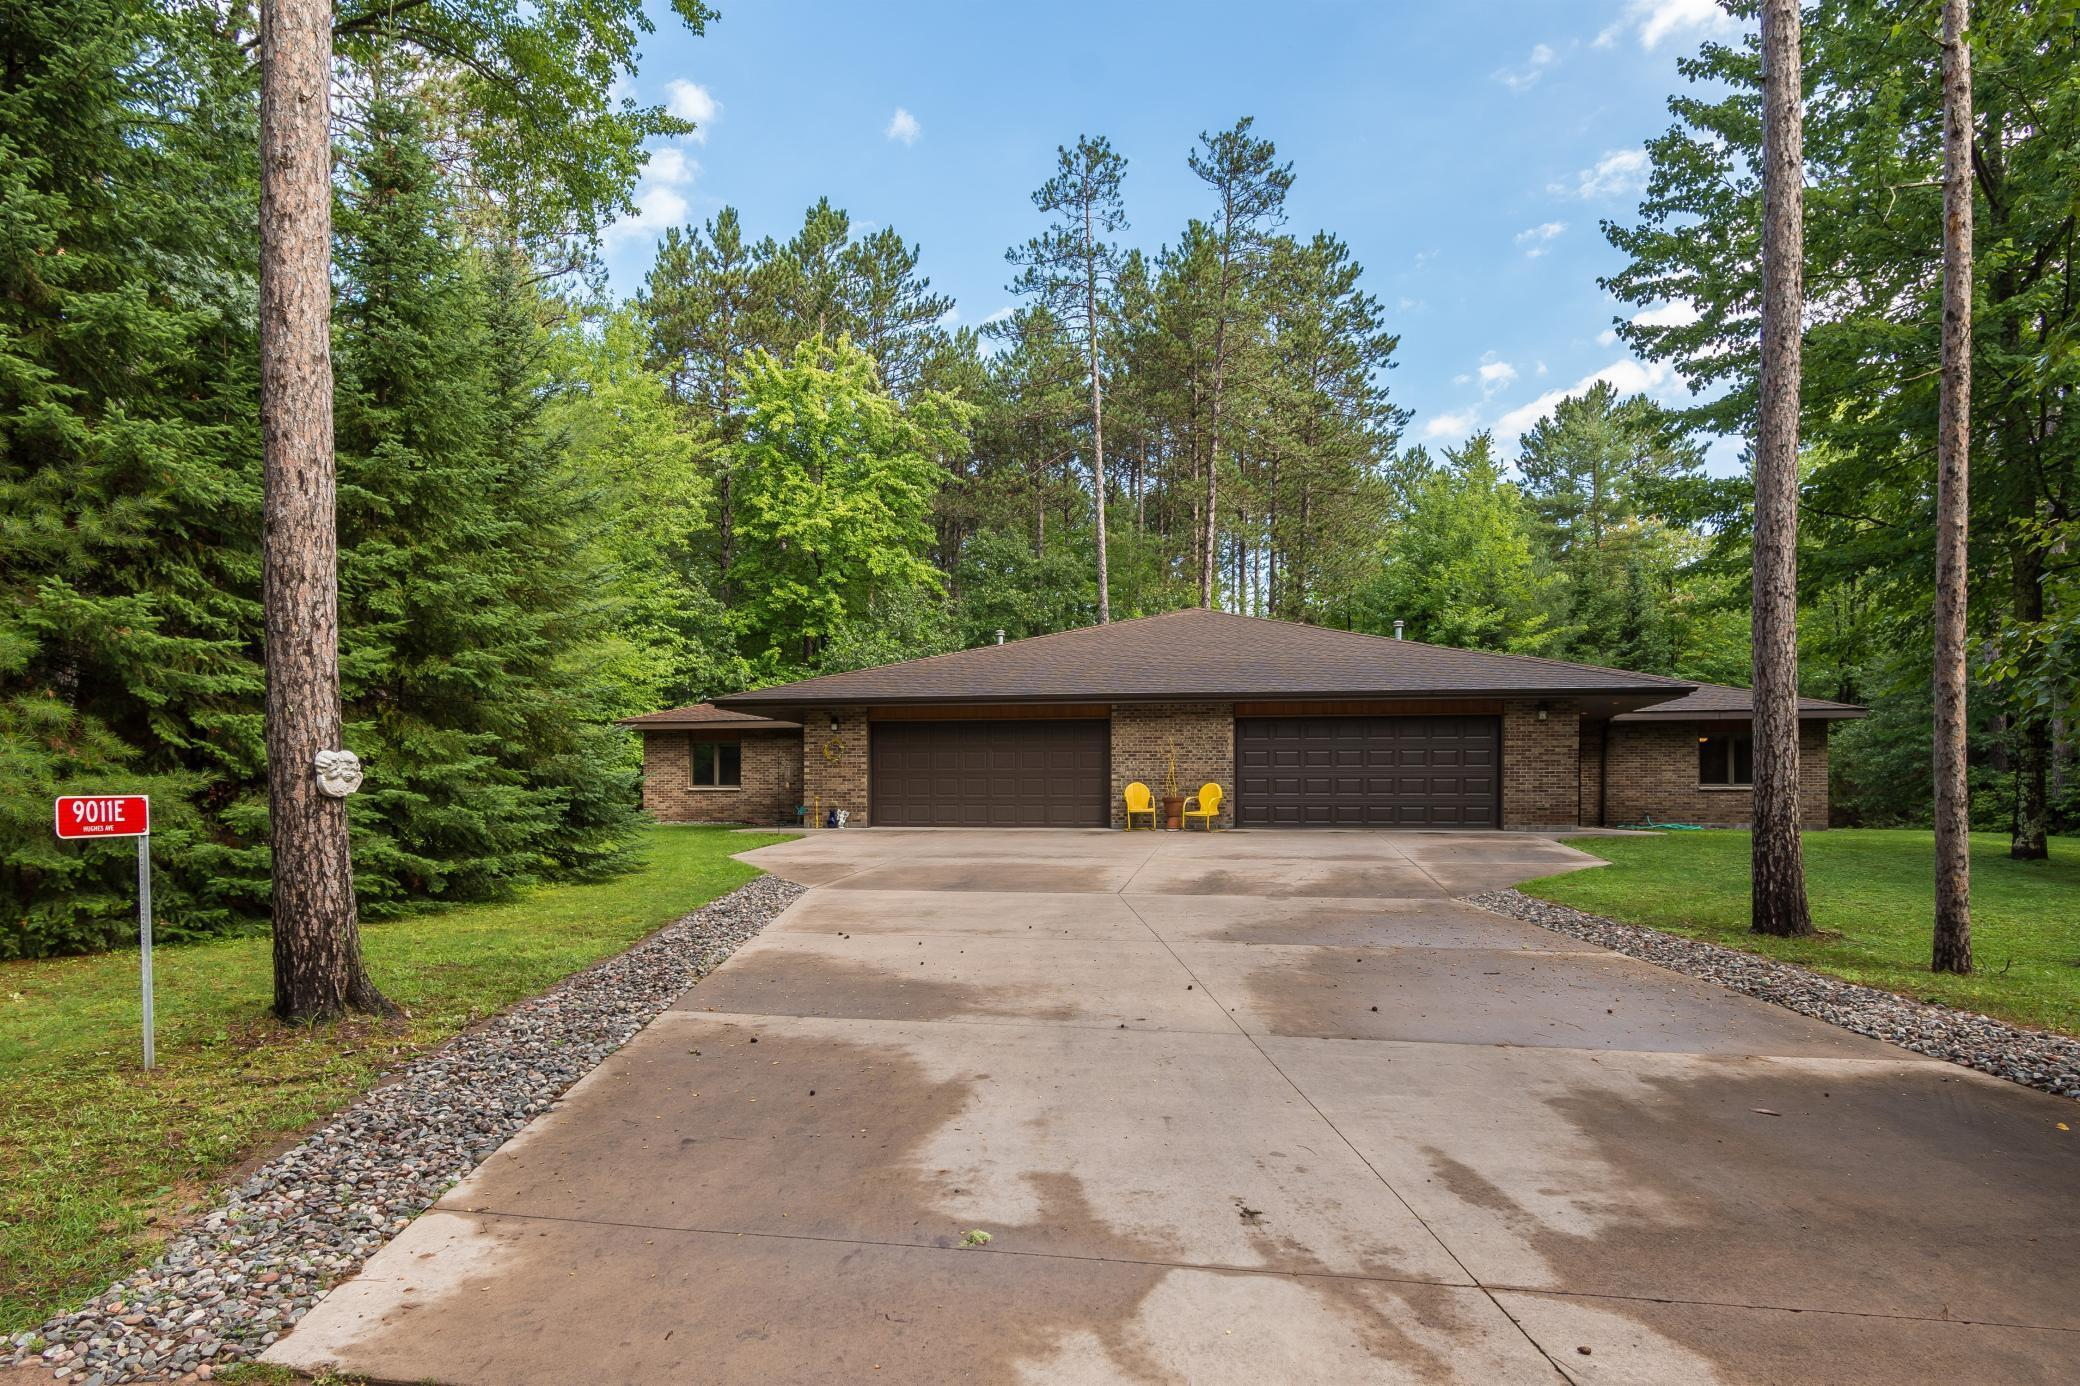 9011 E Hughes Avenue Property Photo - Solon Springs, WI real estate listing